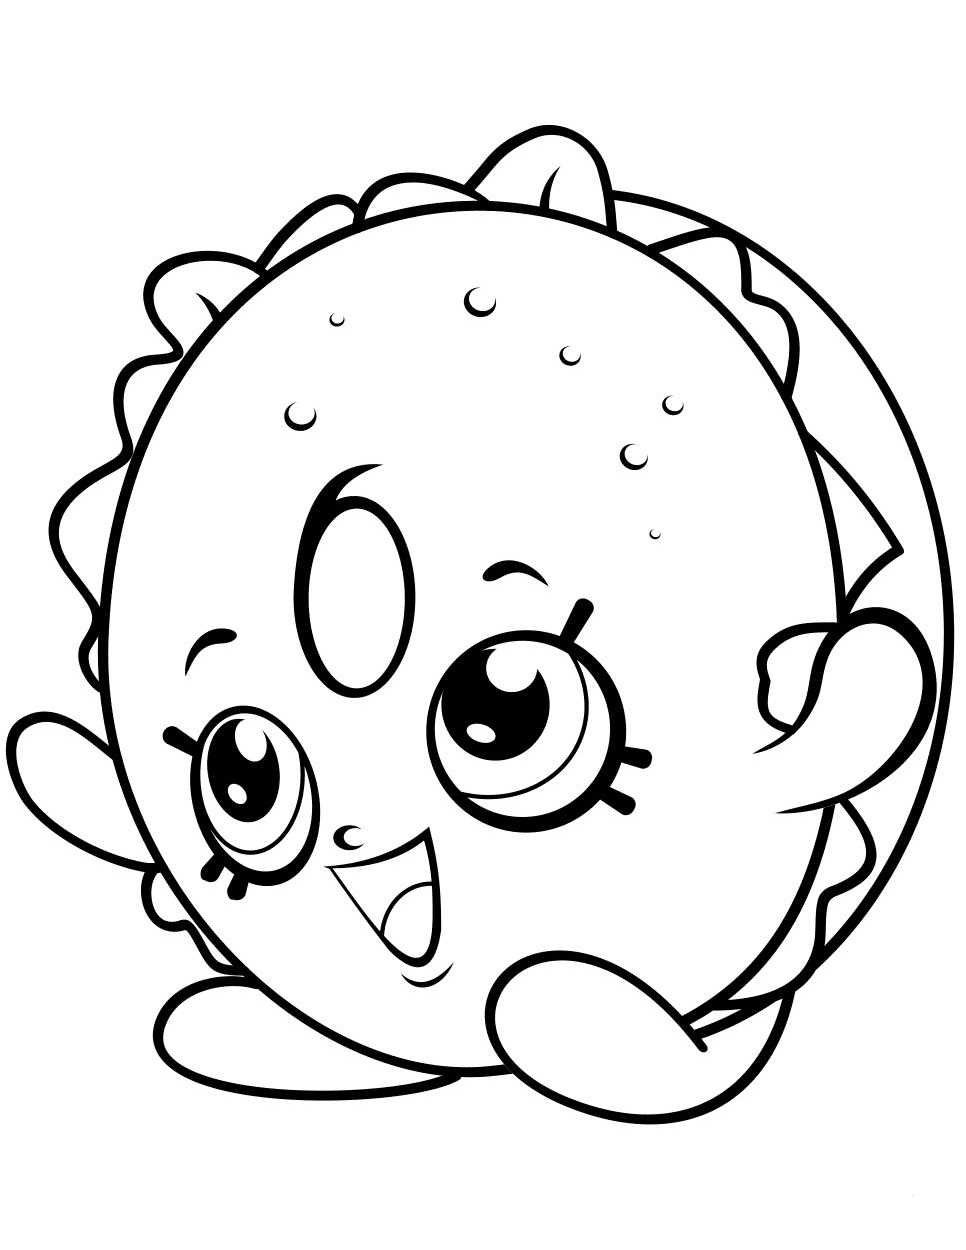 shopkin pictures that you can print image result for coloring page shopkins paginas colorear can shopkin you pictures print that